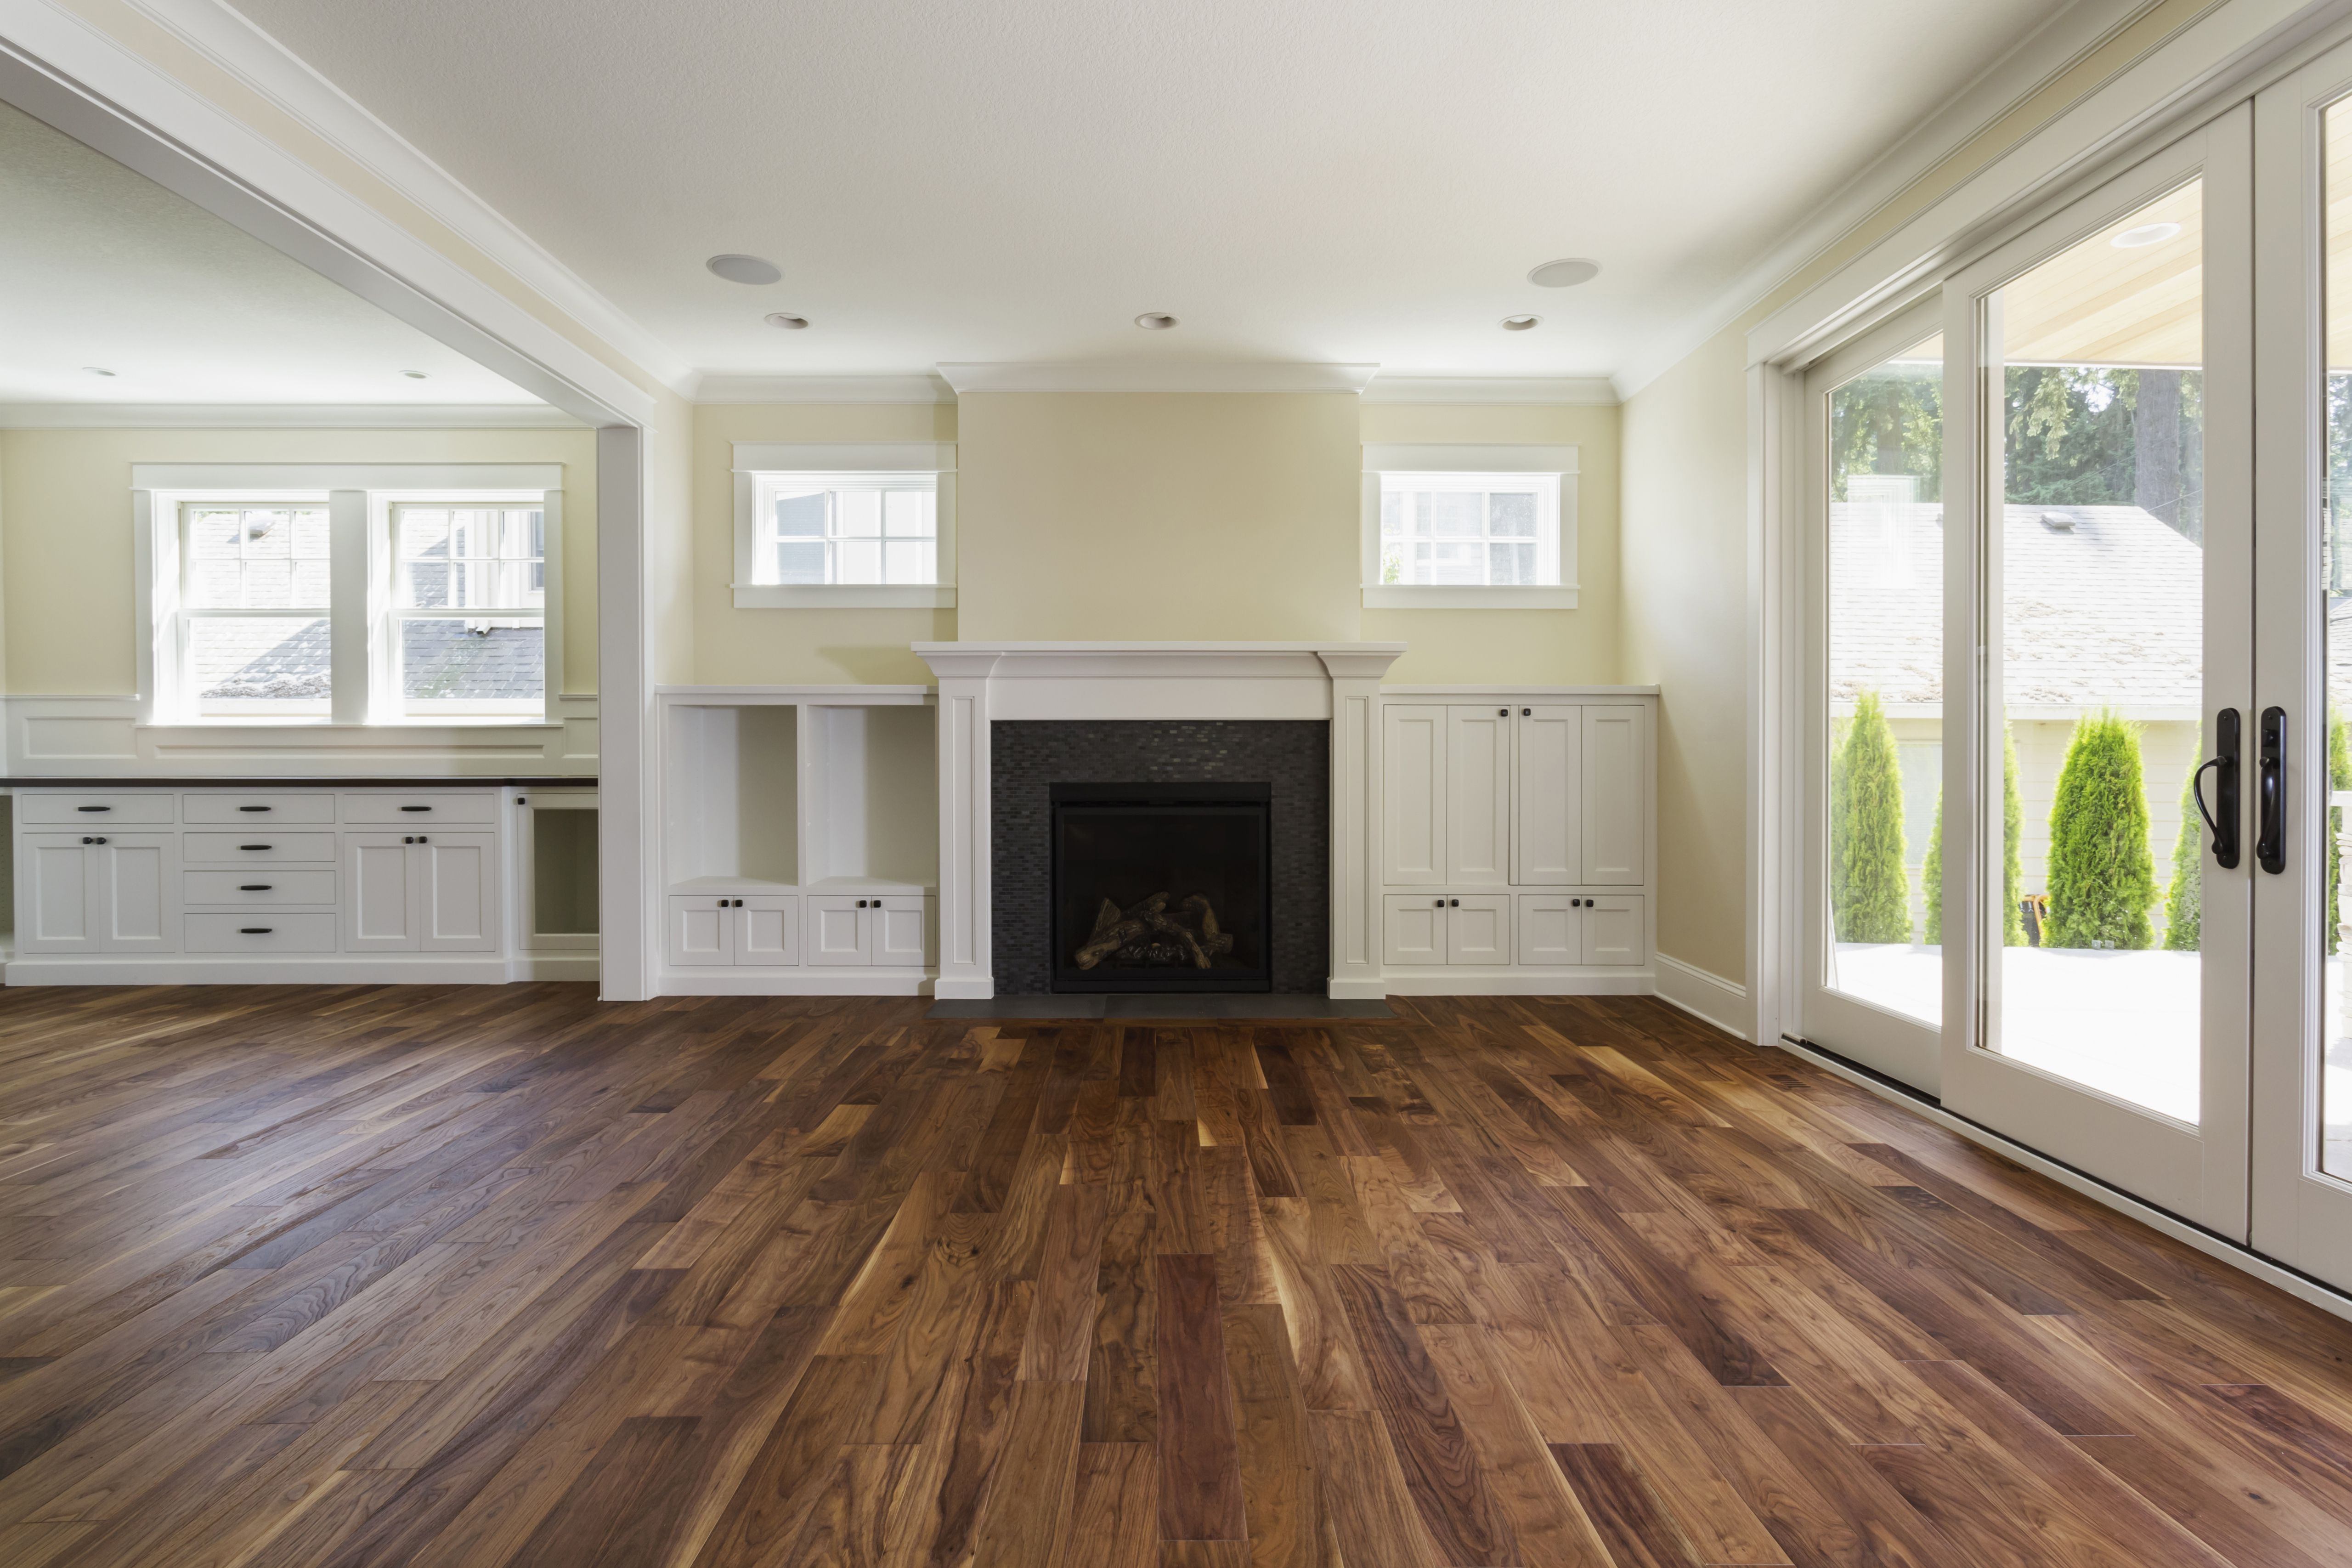 buy hardwood flooring online canada of the pros and cons of prefinished hardwood flooring with regard to fireplace and built in shelves in living room 482143011 57bef8e33df78cc16e035397